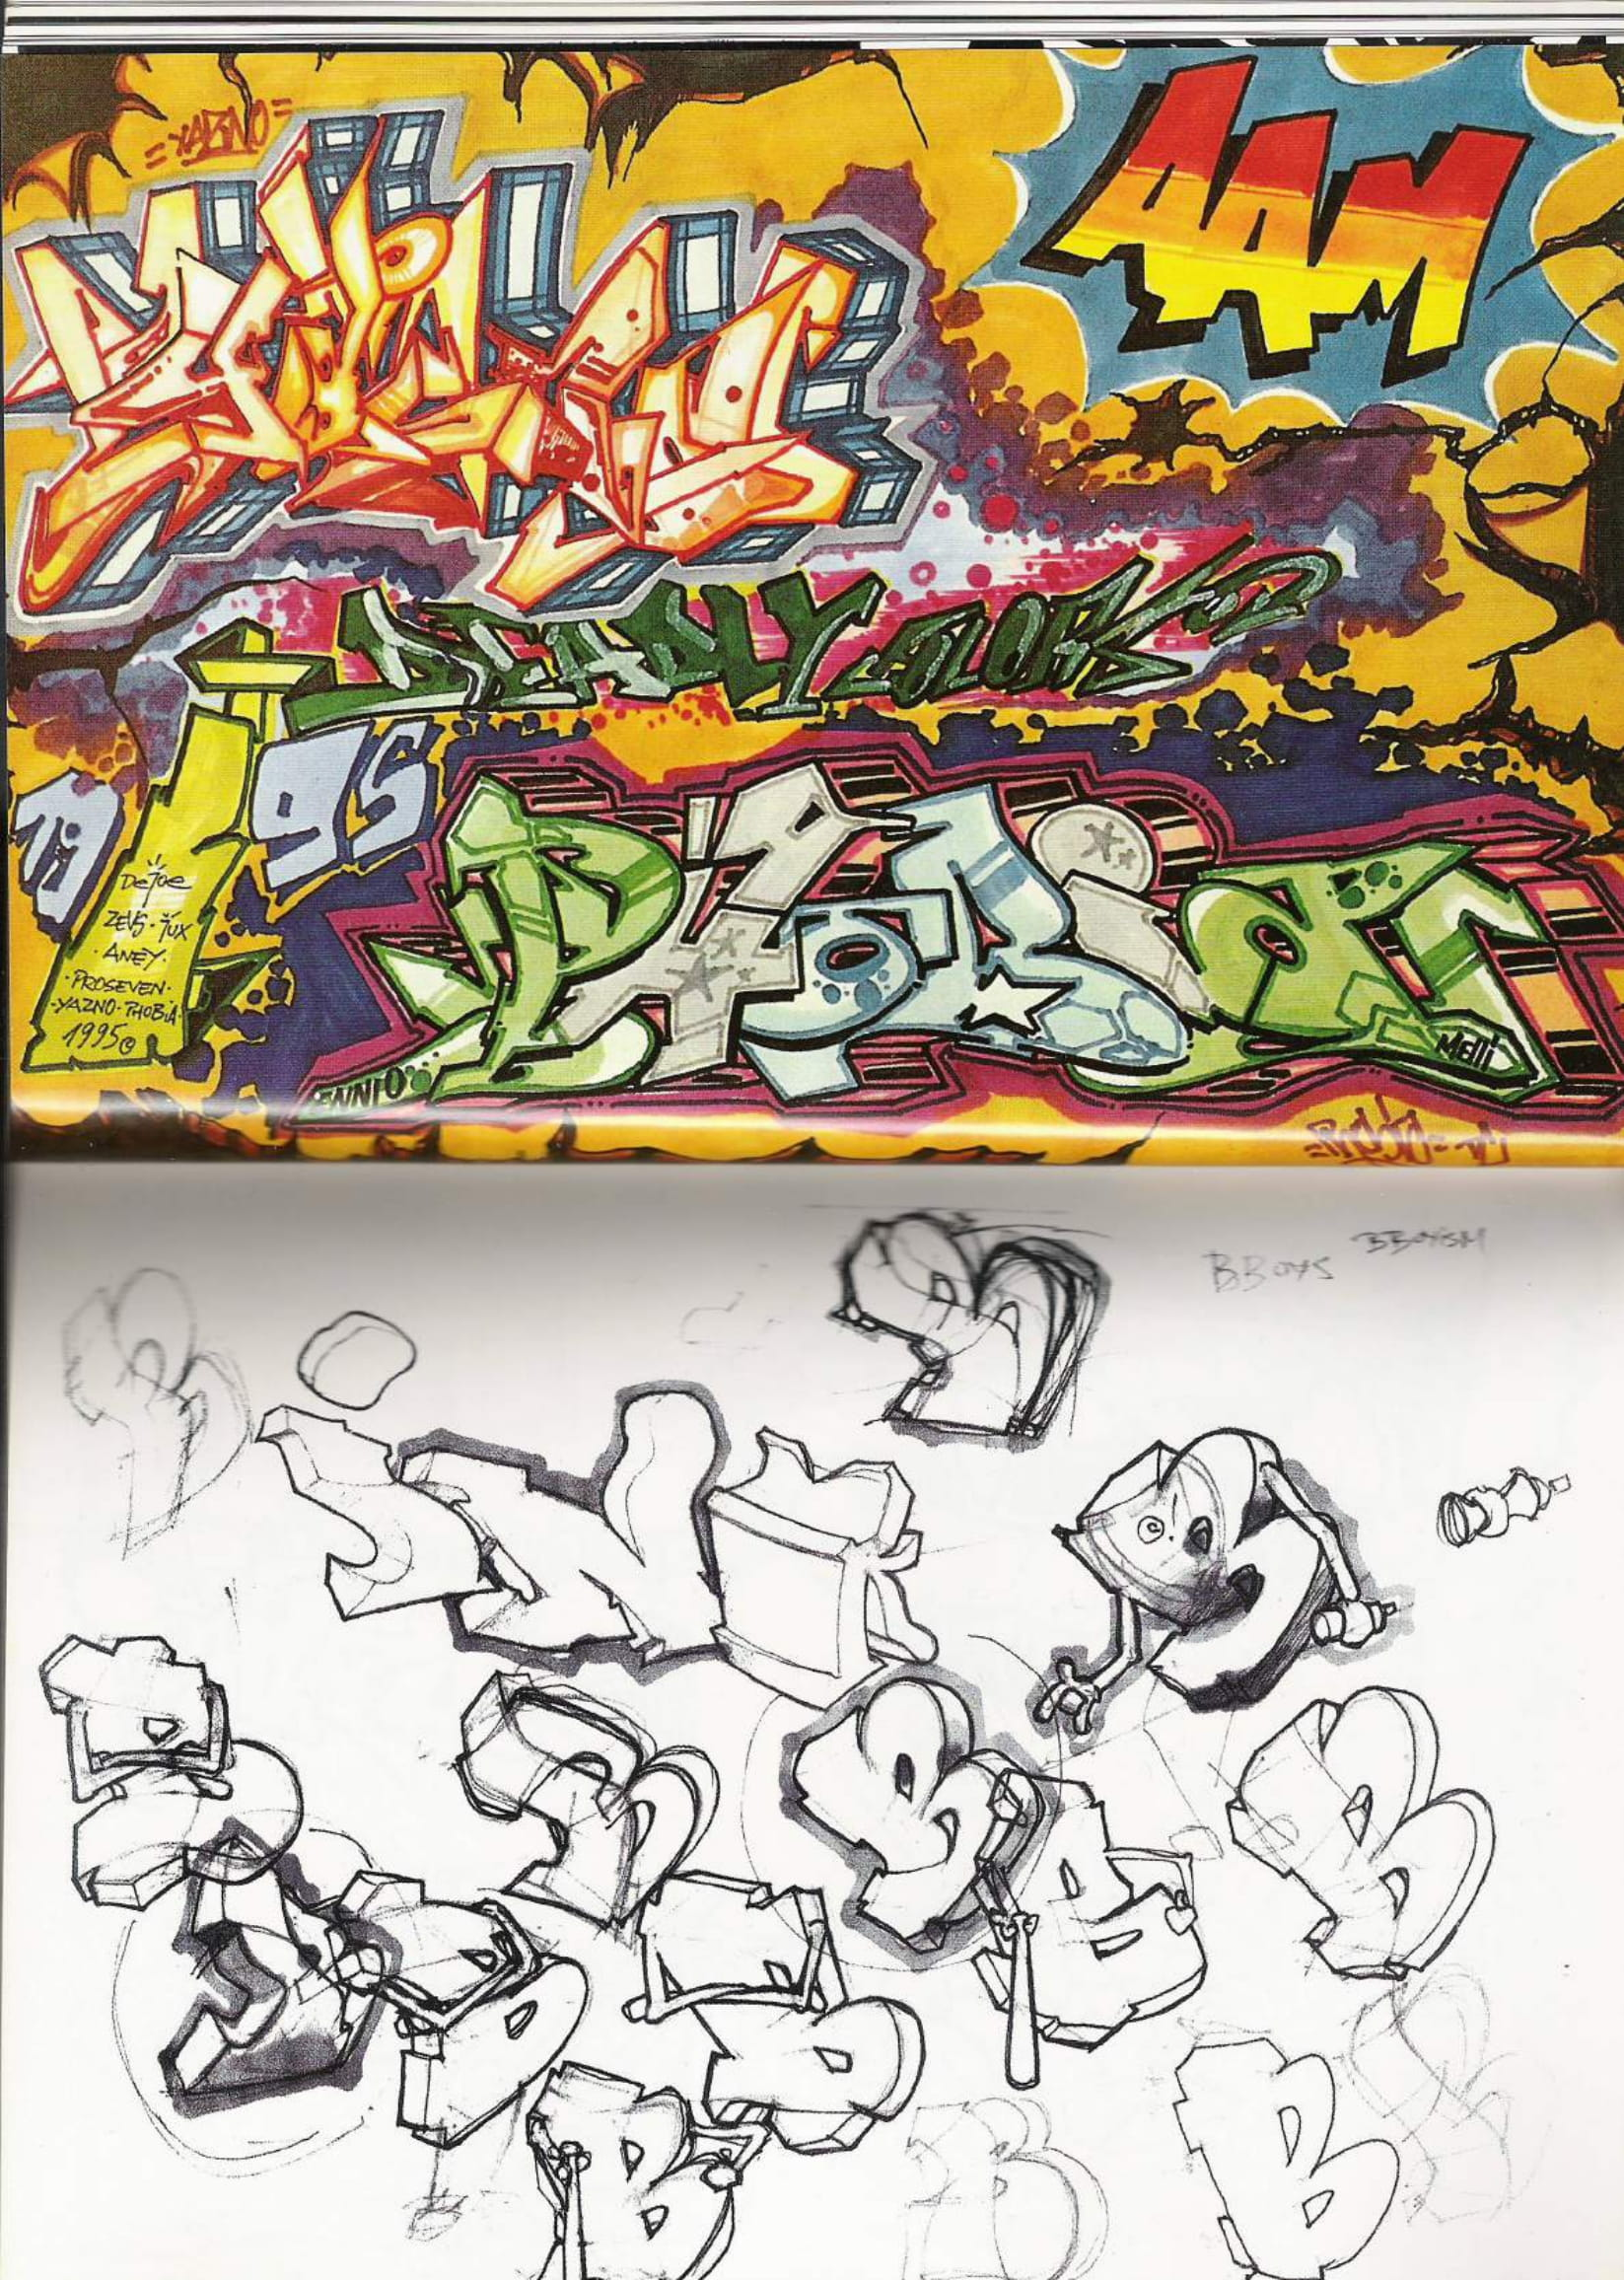 Backjumps.-.Sketchbook-AEROHOLICS-compressed-18.jpg